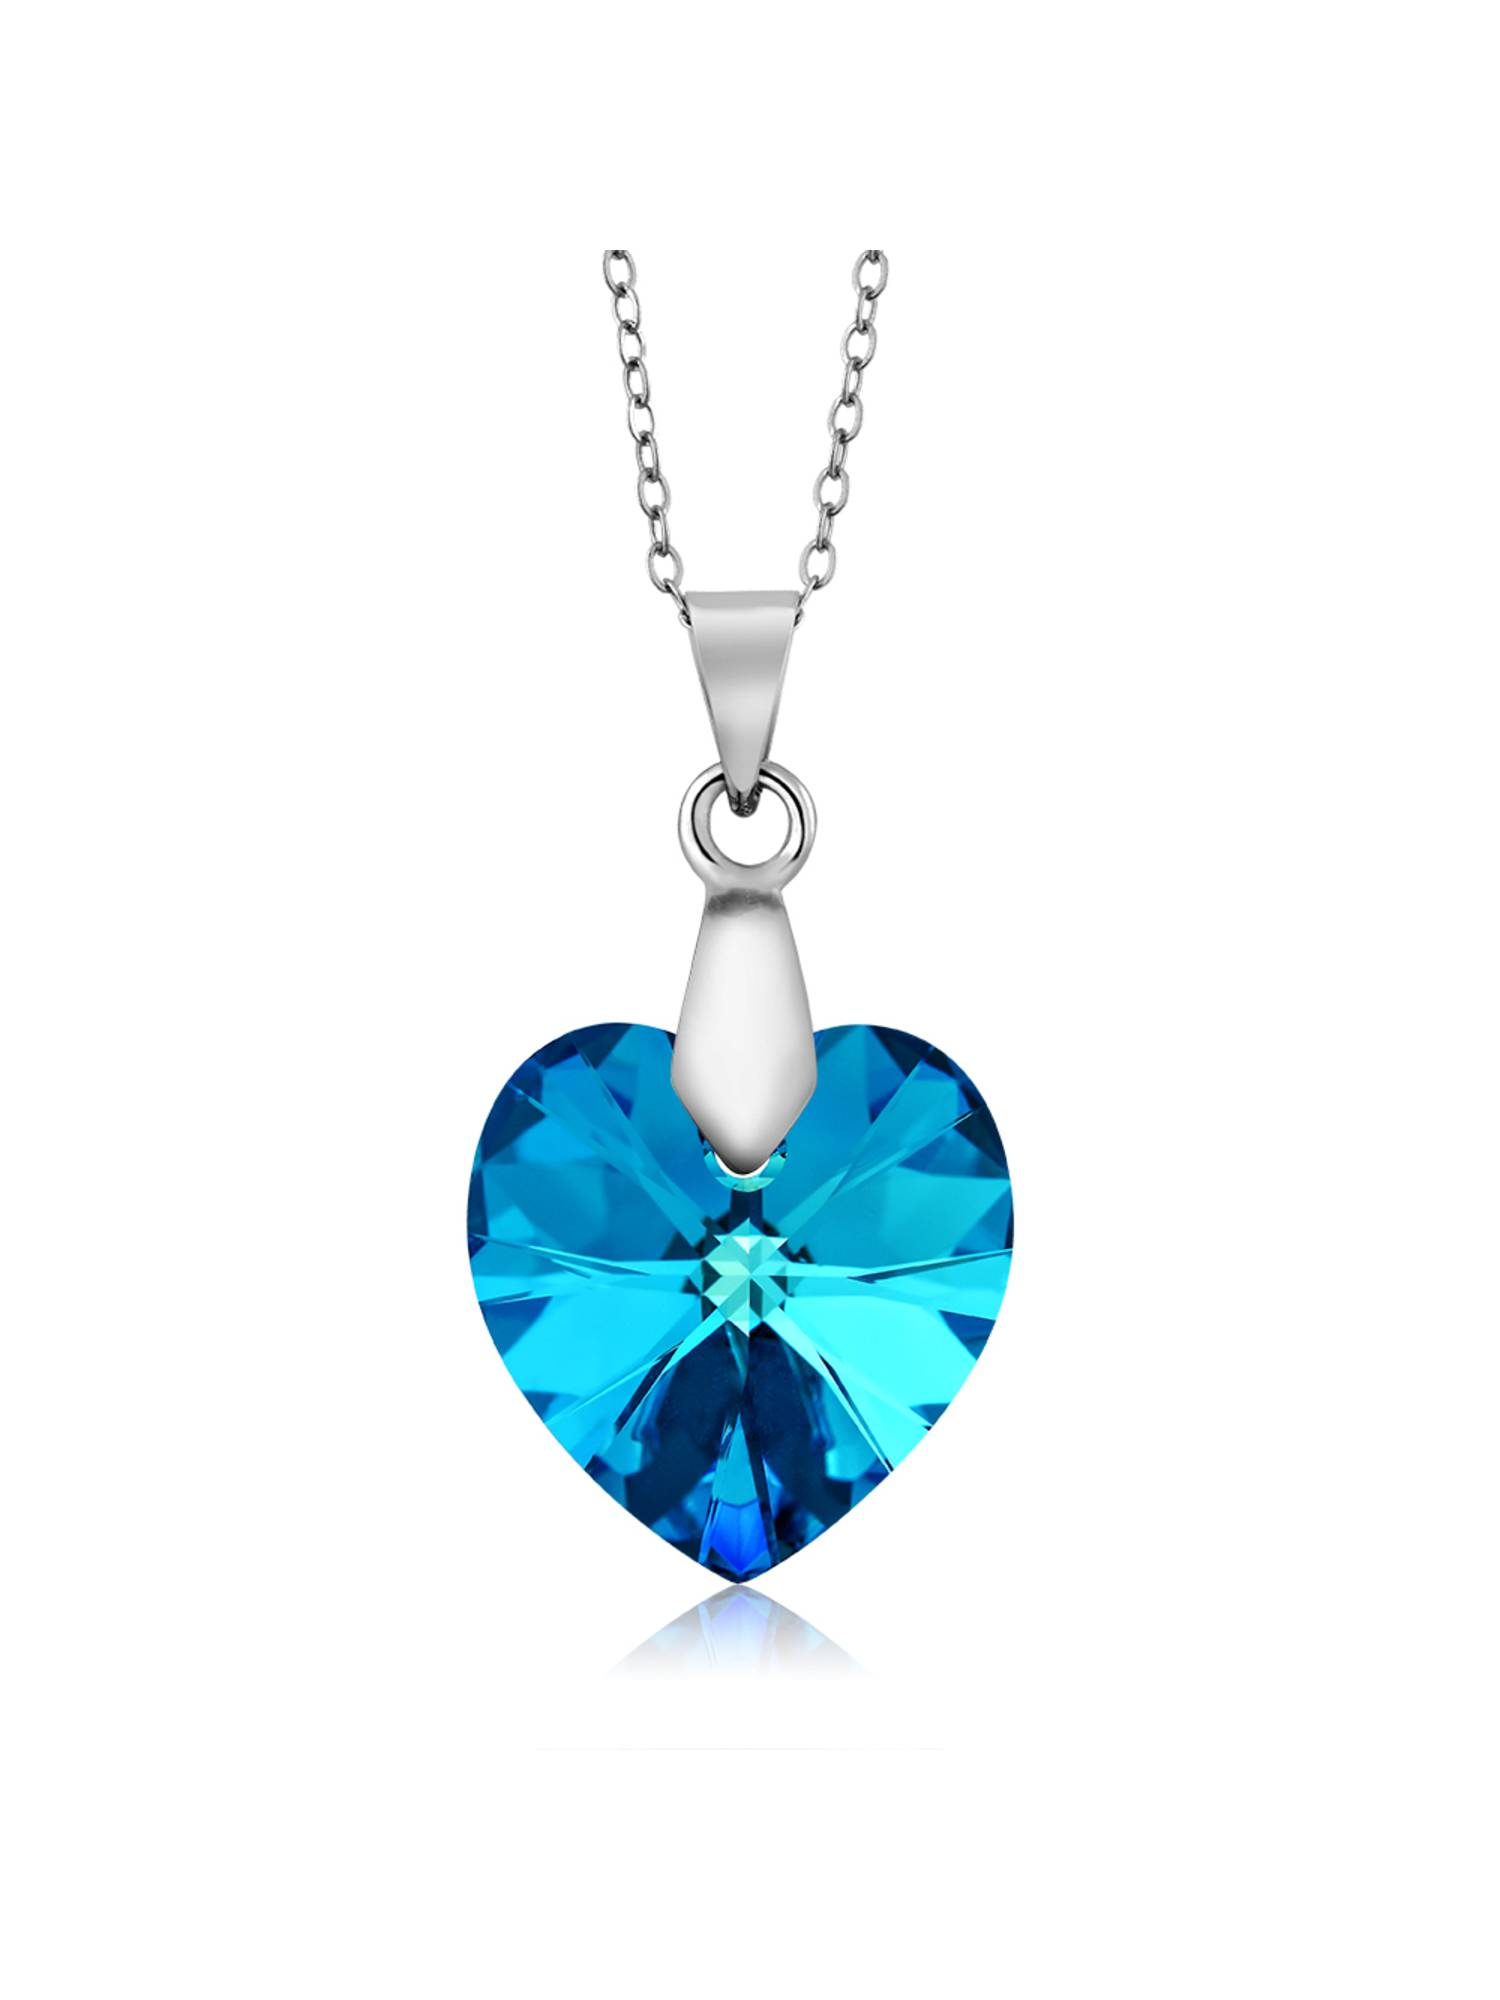 Collection Bermuda Blue Heart Pendant Created with Swarovski Crystals